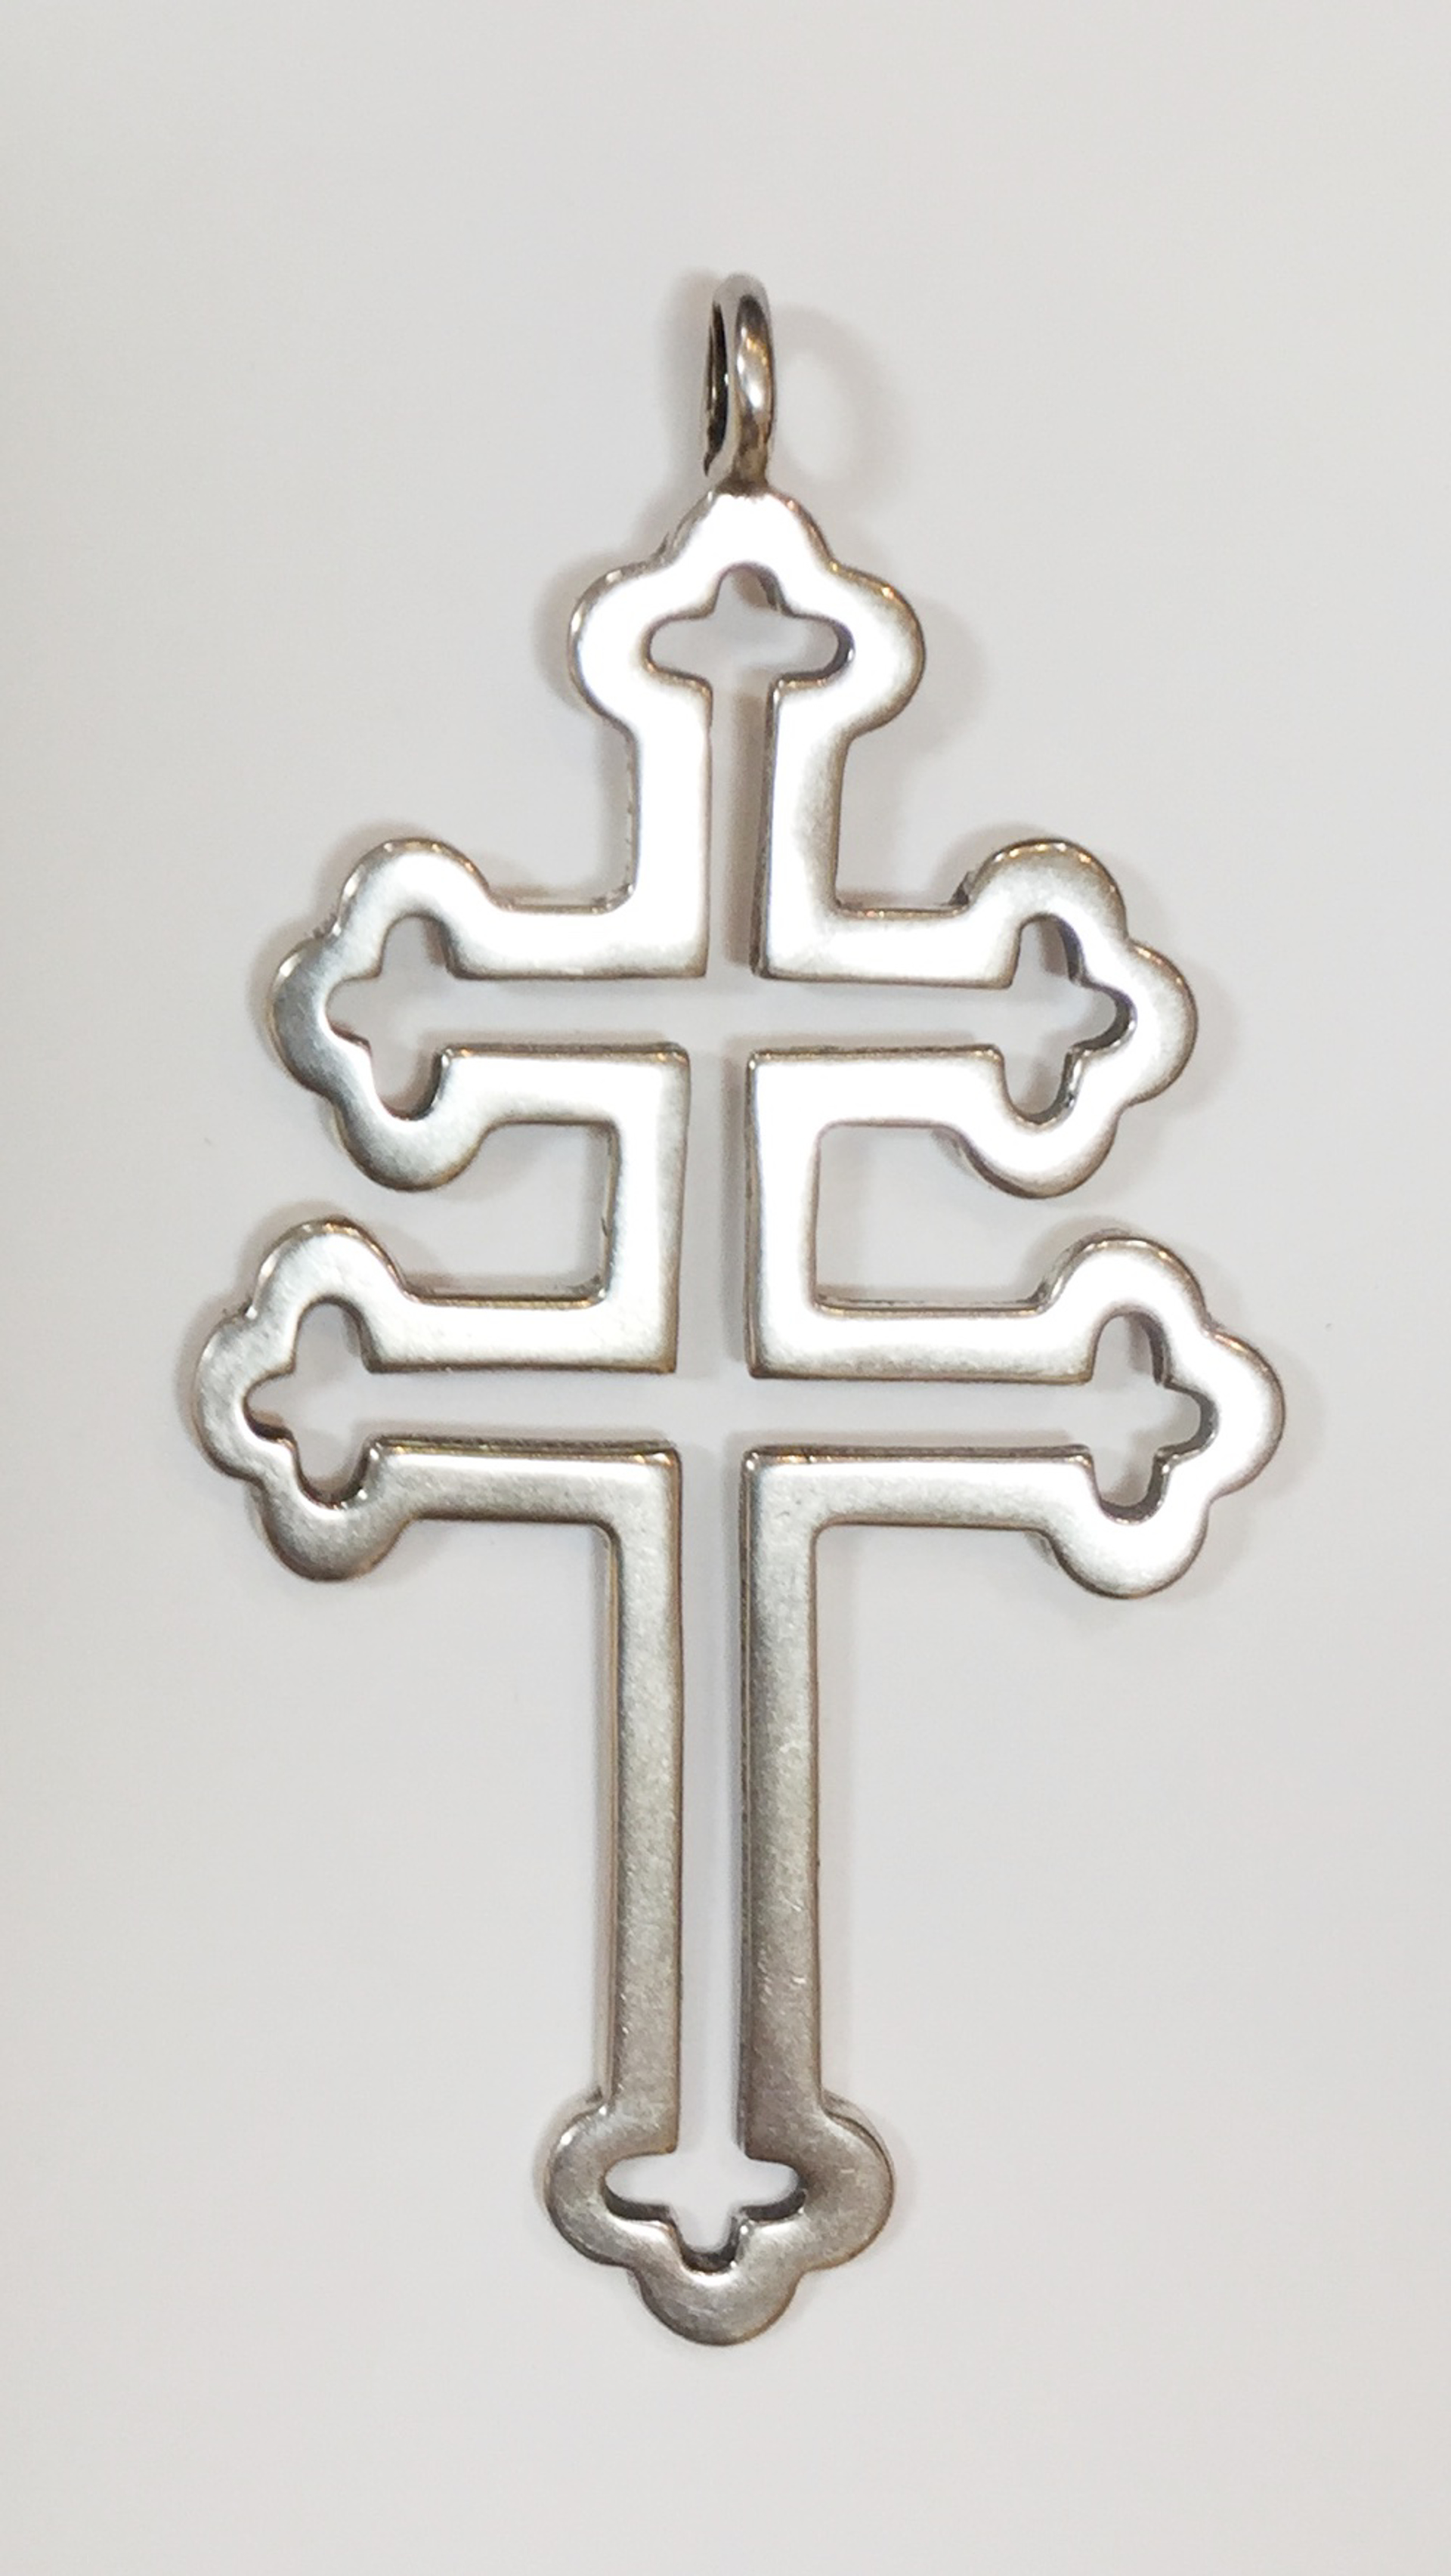 Pendant - Silver Cross of Lorraine 9231 by Deanne McKeown